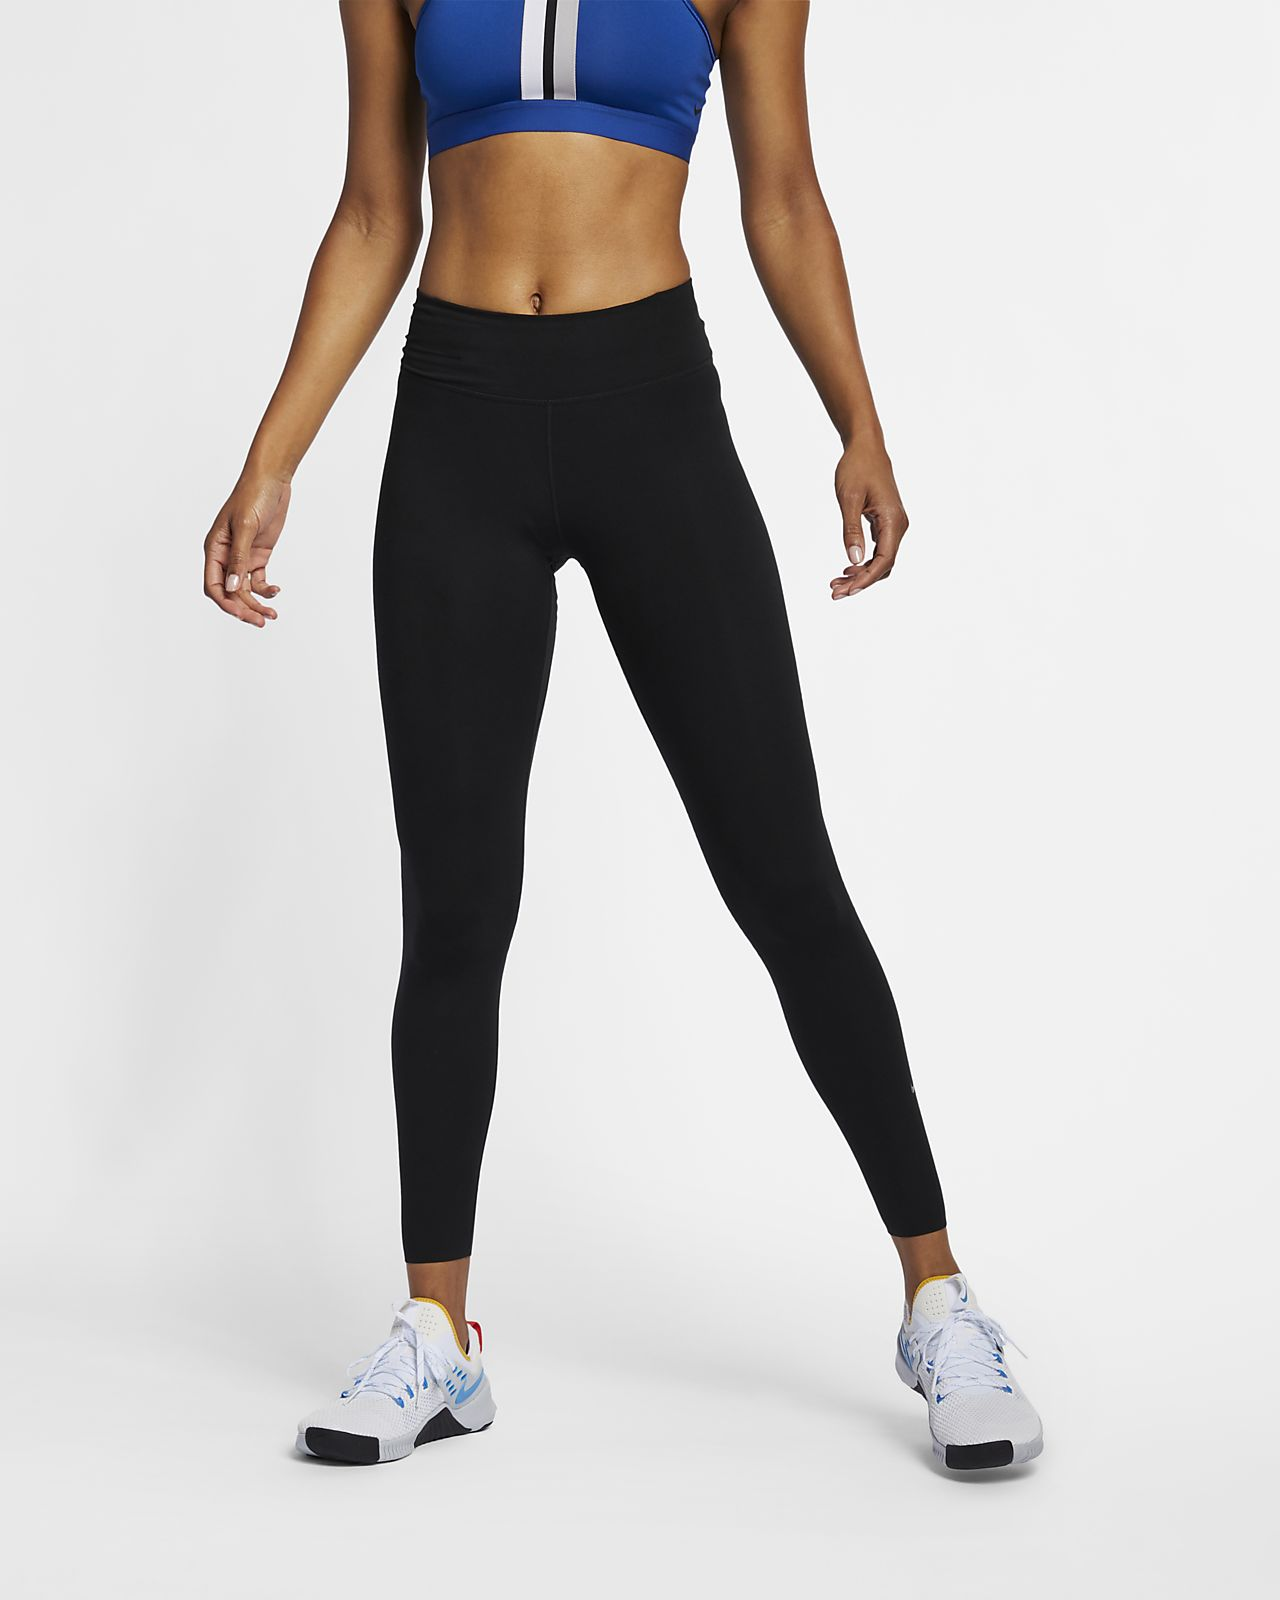 Nike One Luxe Damestights met halfhoge taille